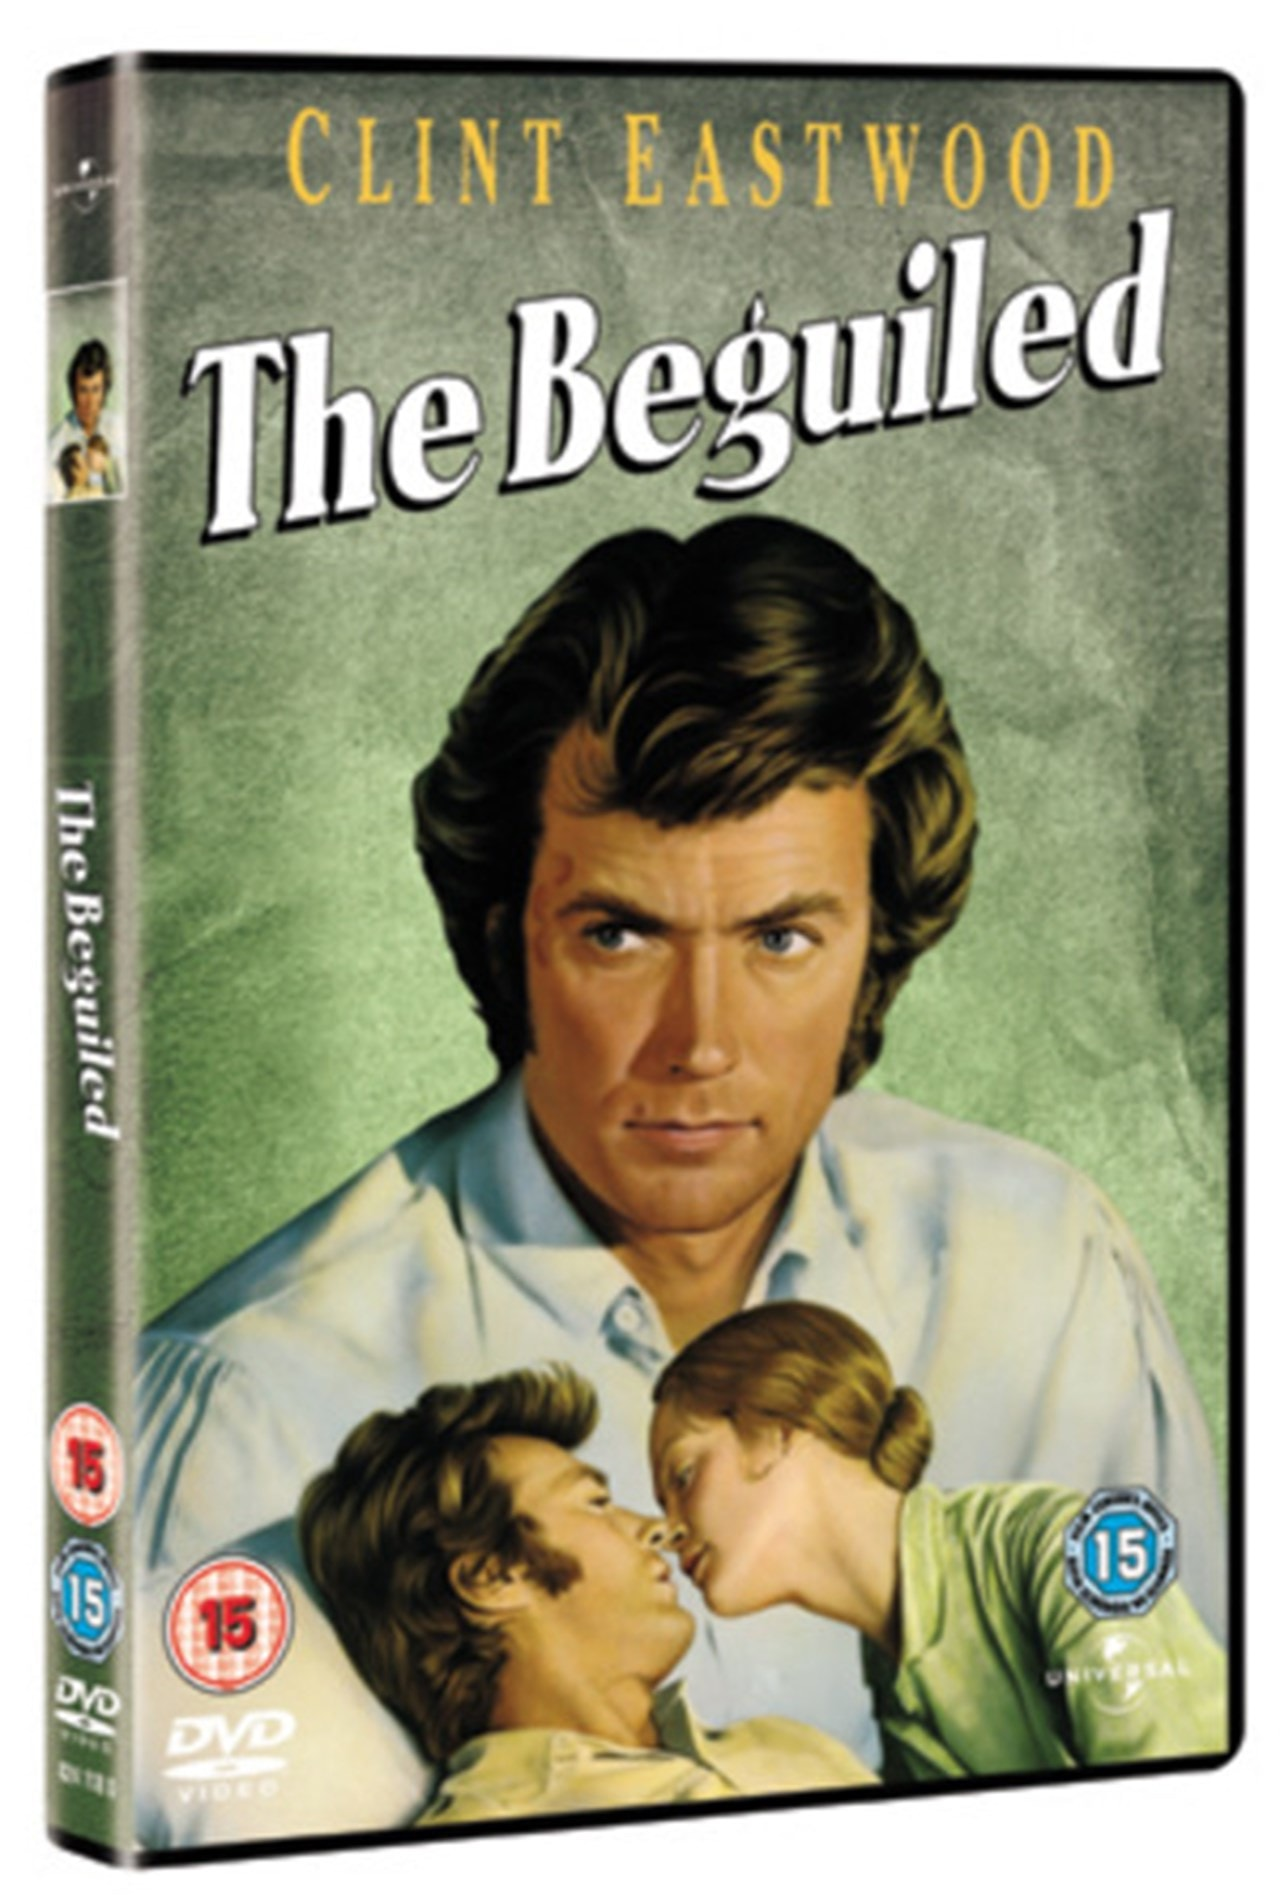 The Beguiled - 1